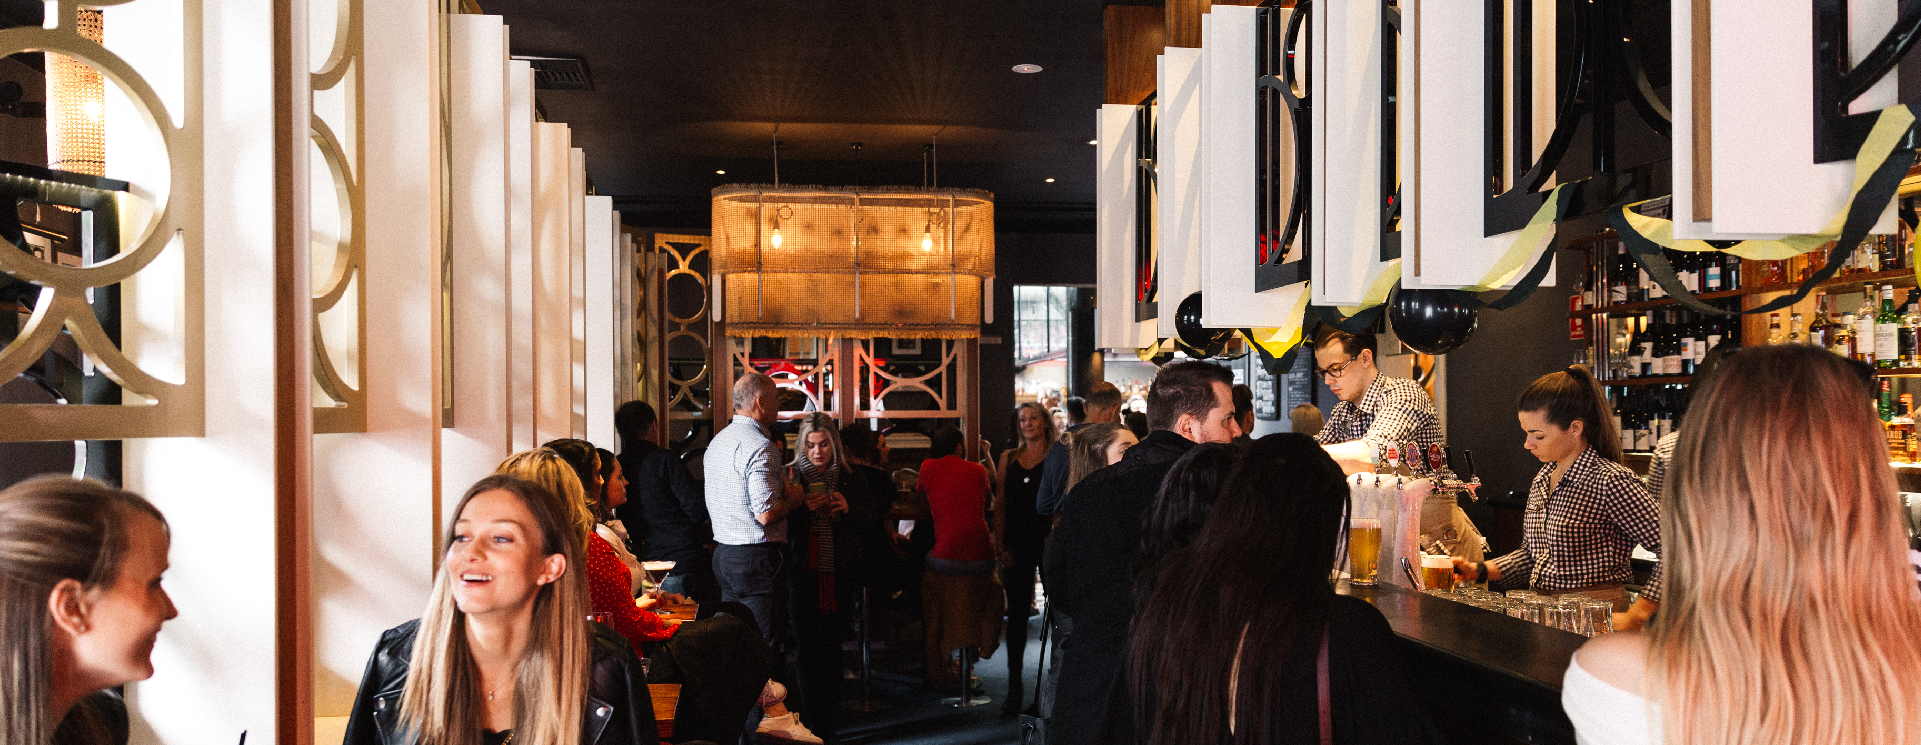 Which are the top function venues in Melbourne?